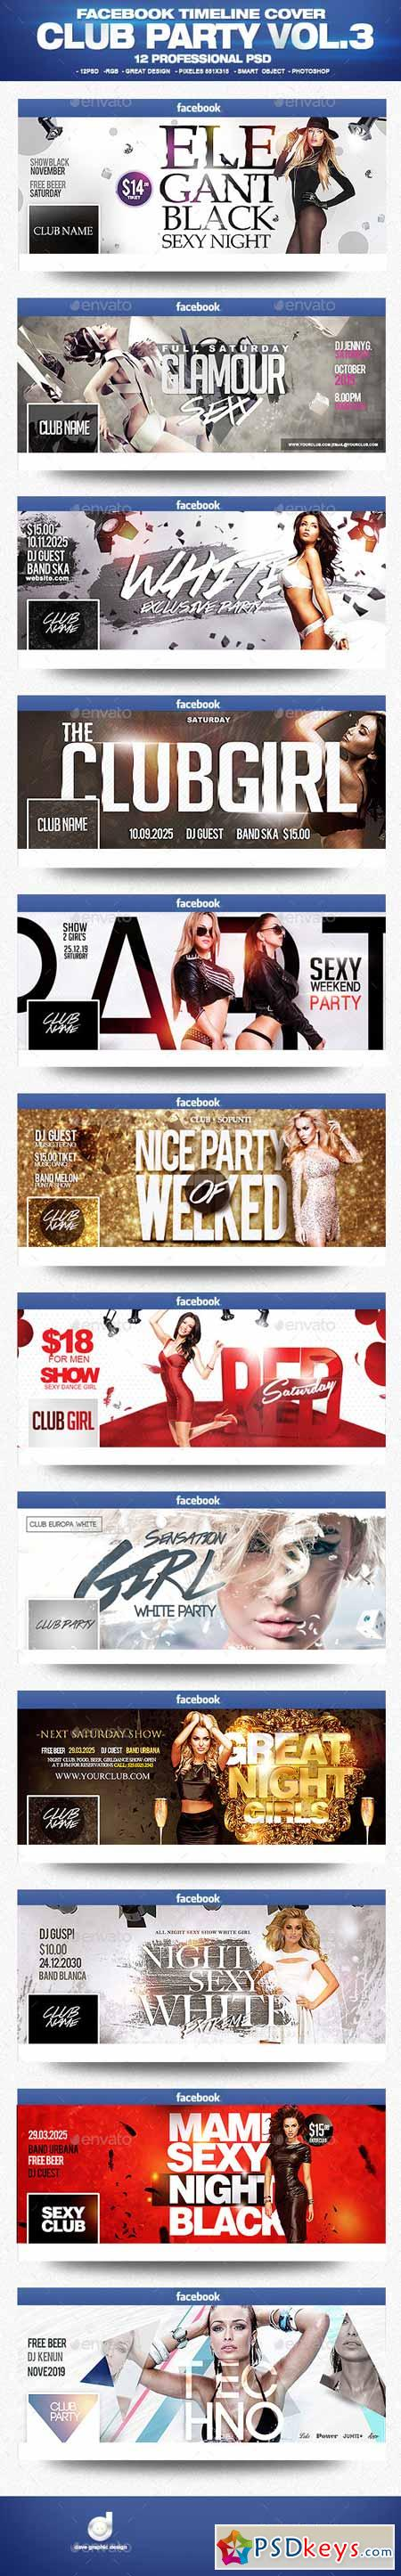 Facebook Timeline Cover Package Club Party Vol.3 13106173